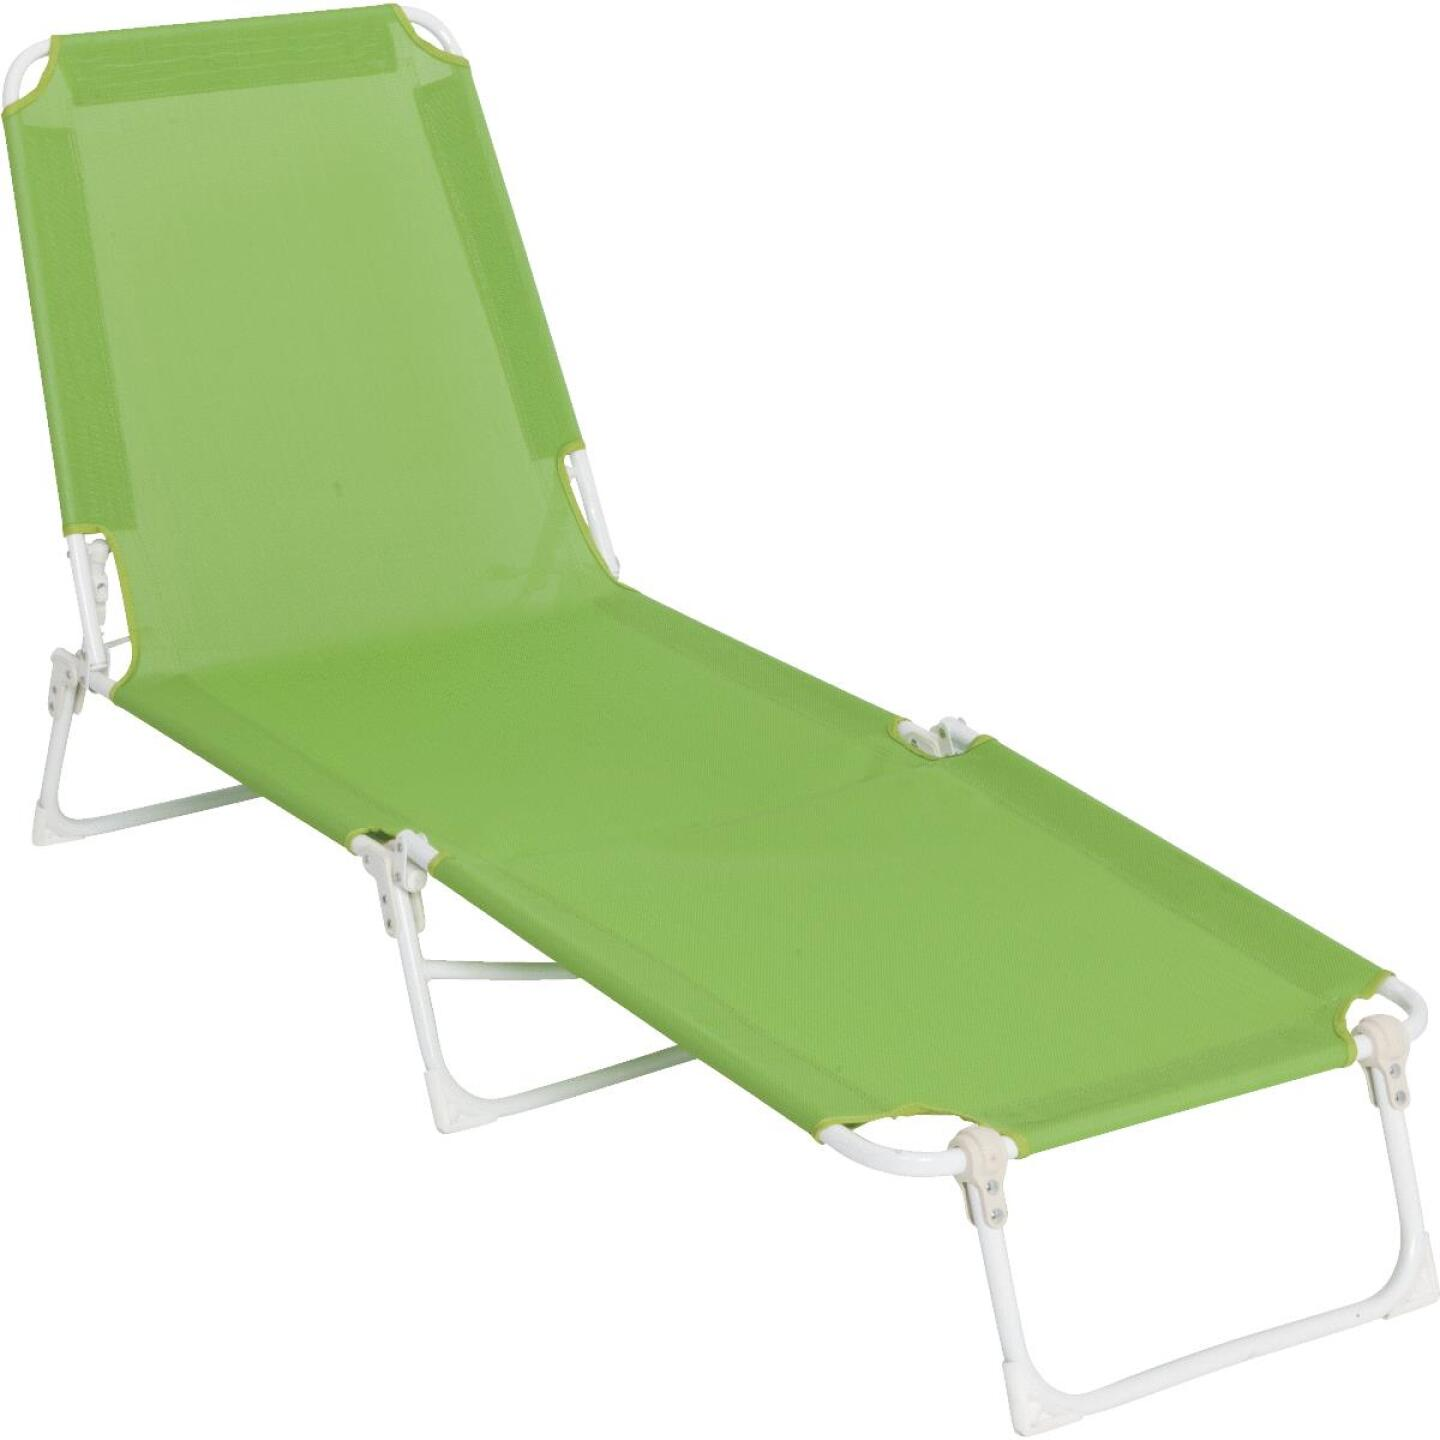 Outdoor Expressions Green Sling Chaise Lounge Image 1